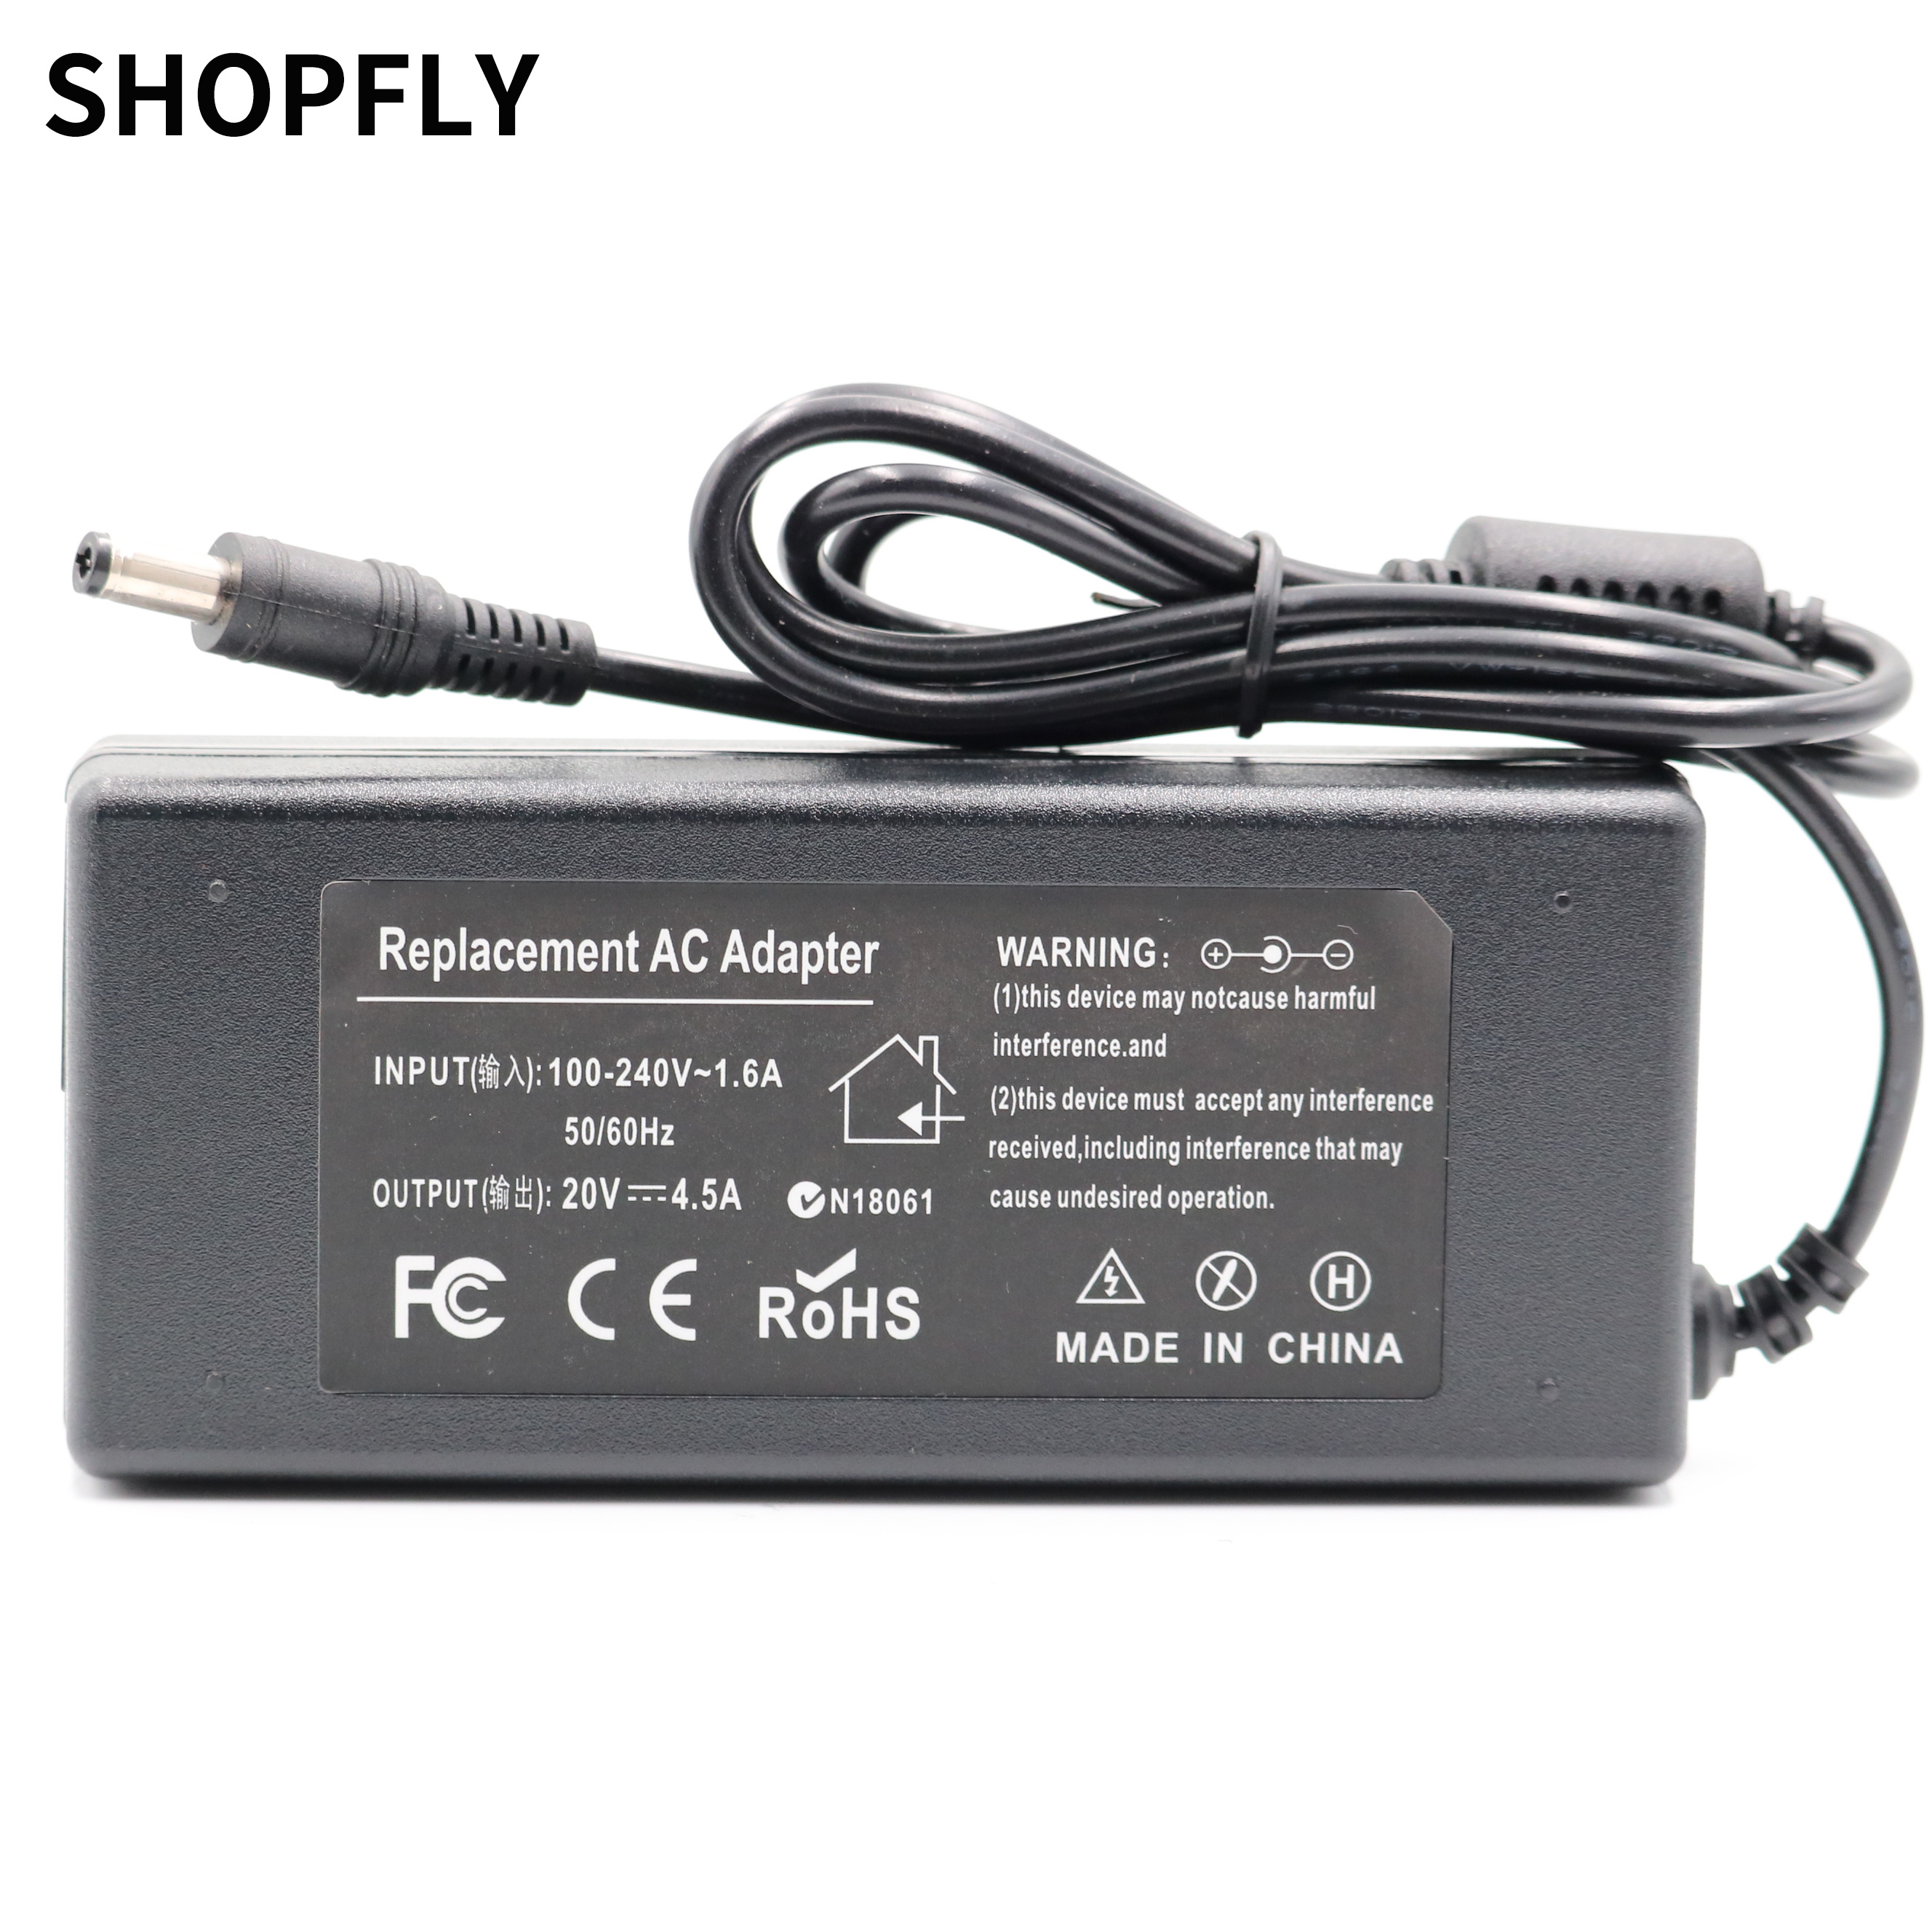 20V 4.5A 90W universal AC power adapter for <font><b>Lenovo</b></font> IdeaPad Z475 Z480 Z485 Z500 Z510 <font><b>Z560</b></font> Z565 Z570 Z575 Z580 Z585 charger image